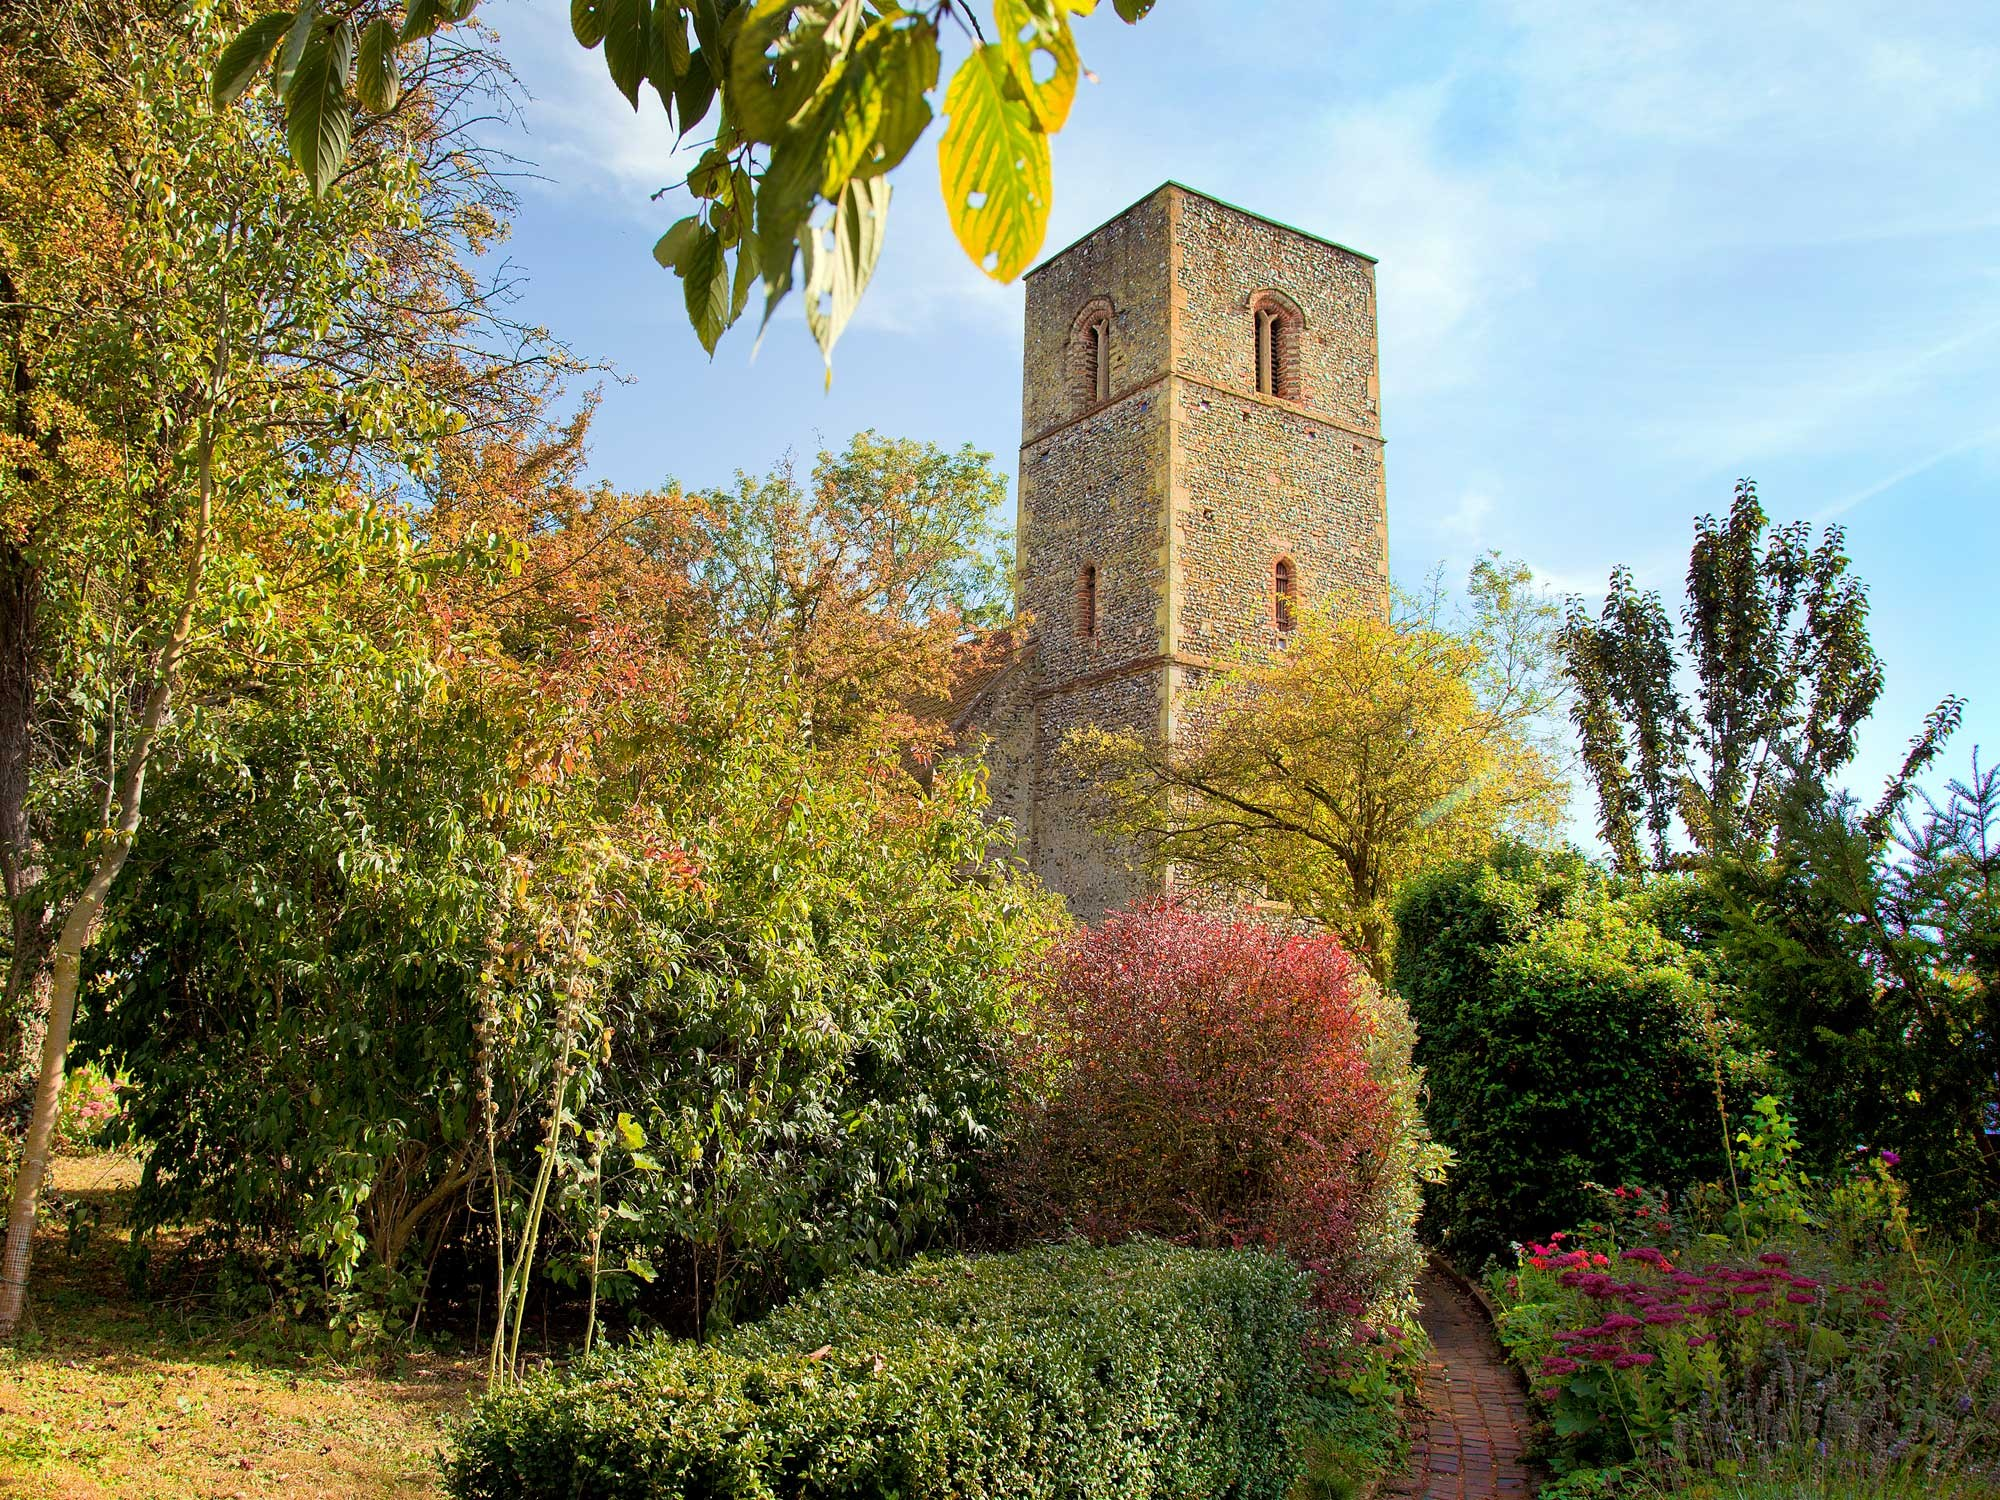 The restored church of St Mary at Houghton-on-the-Hill